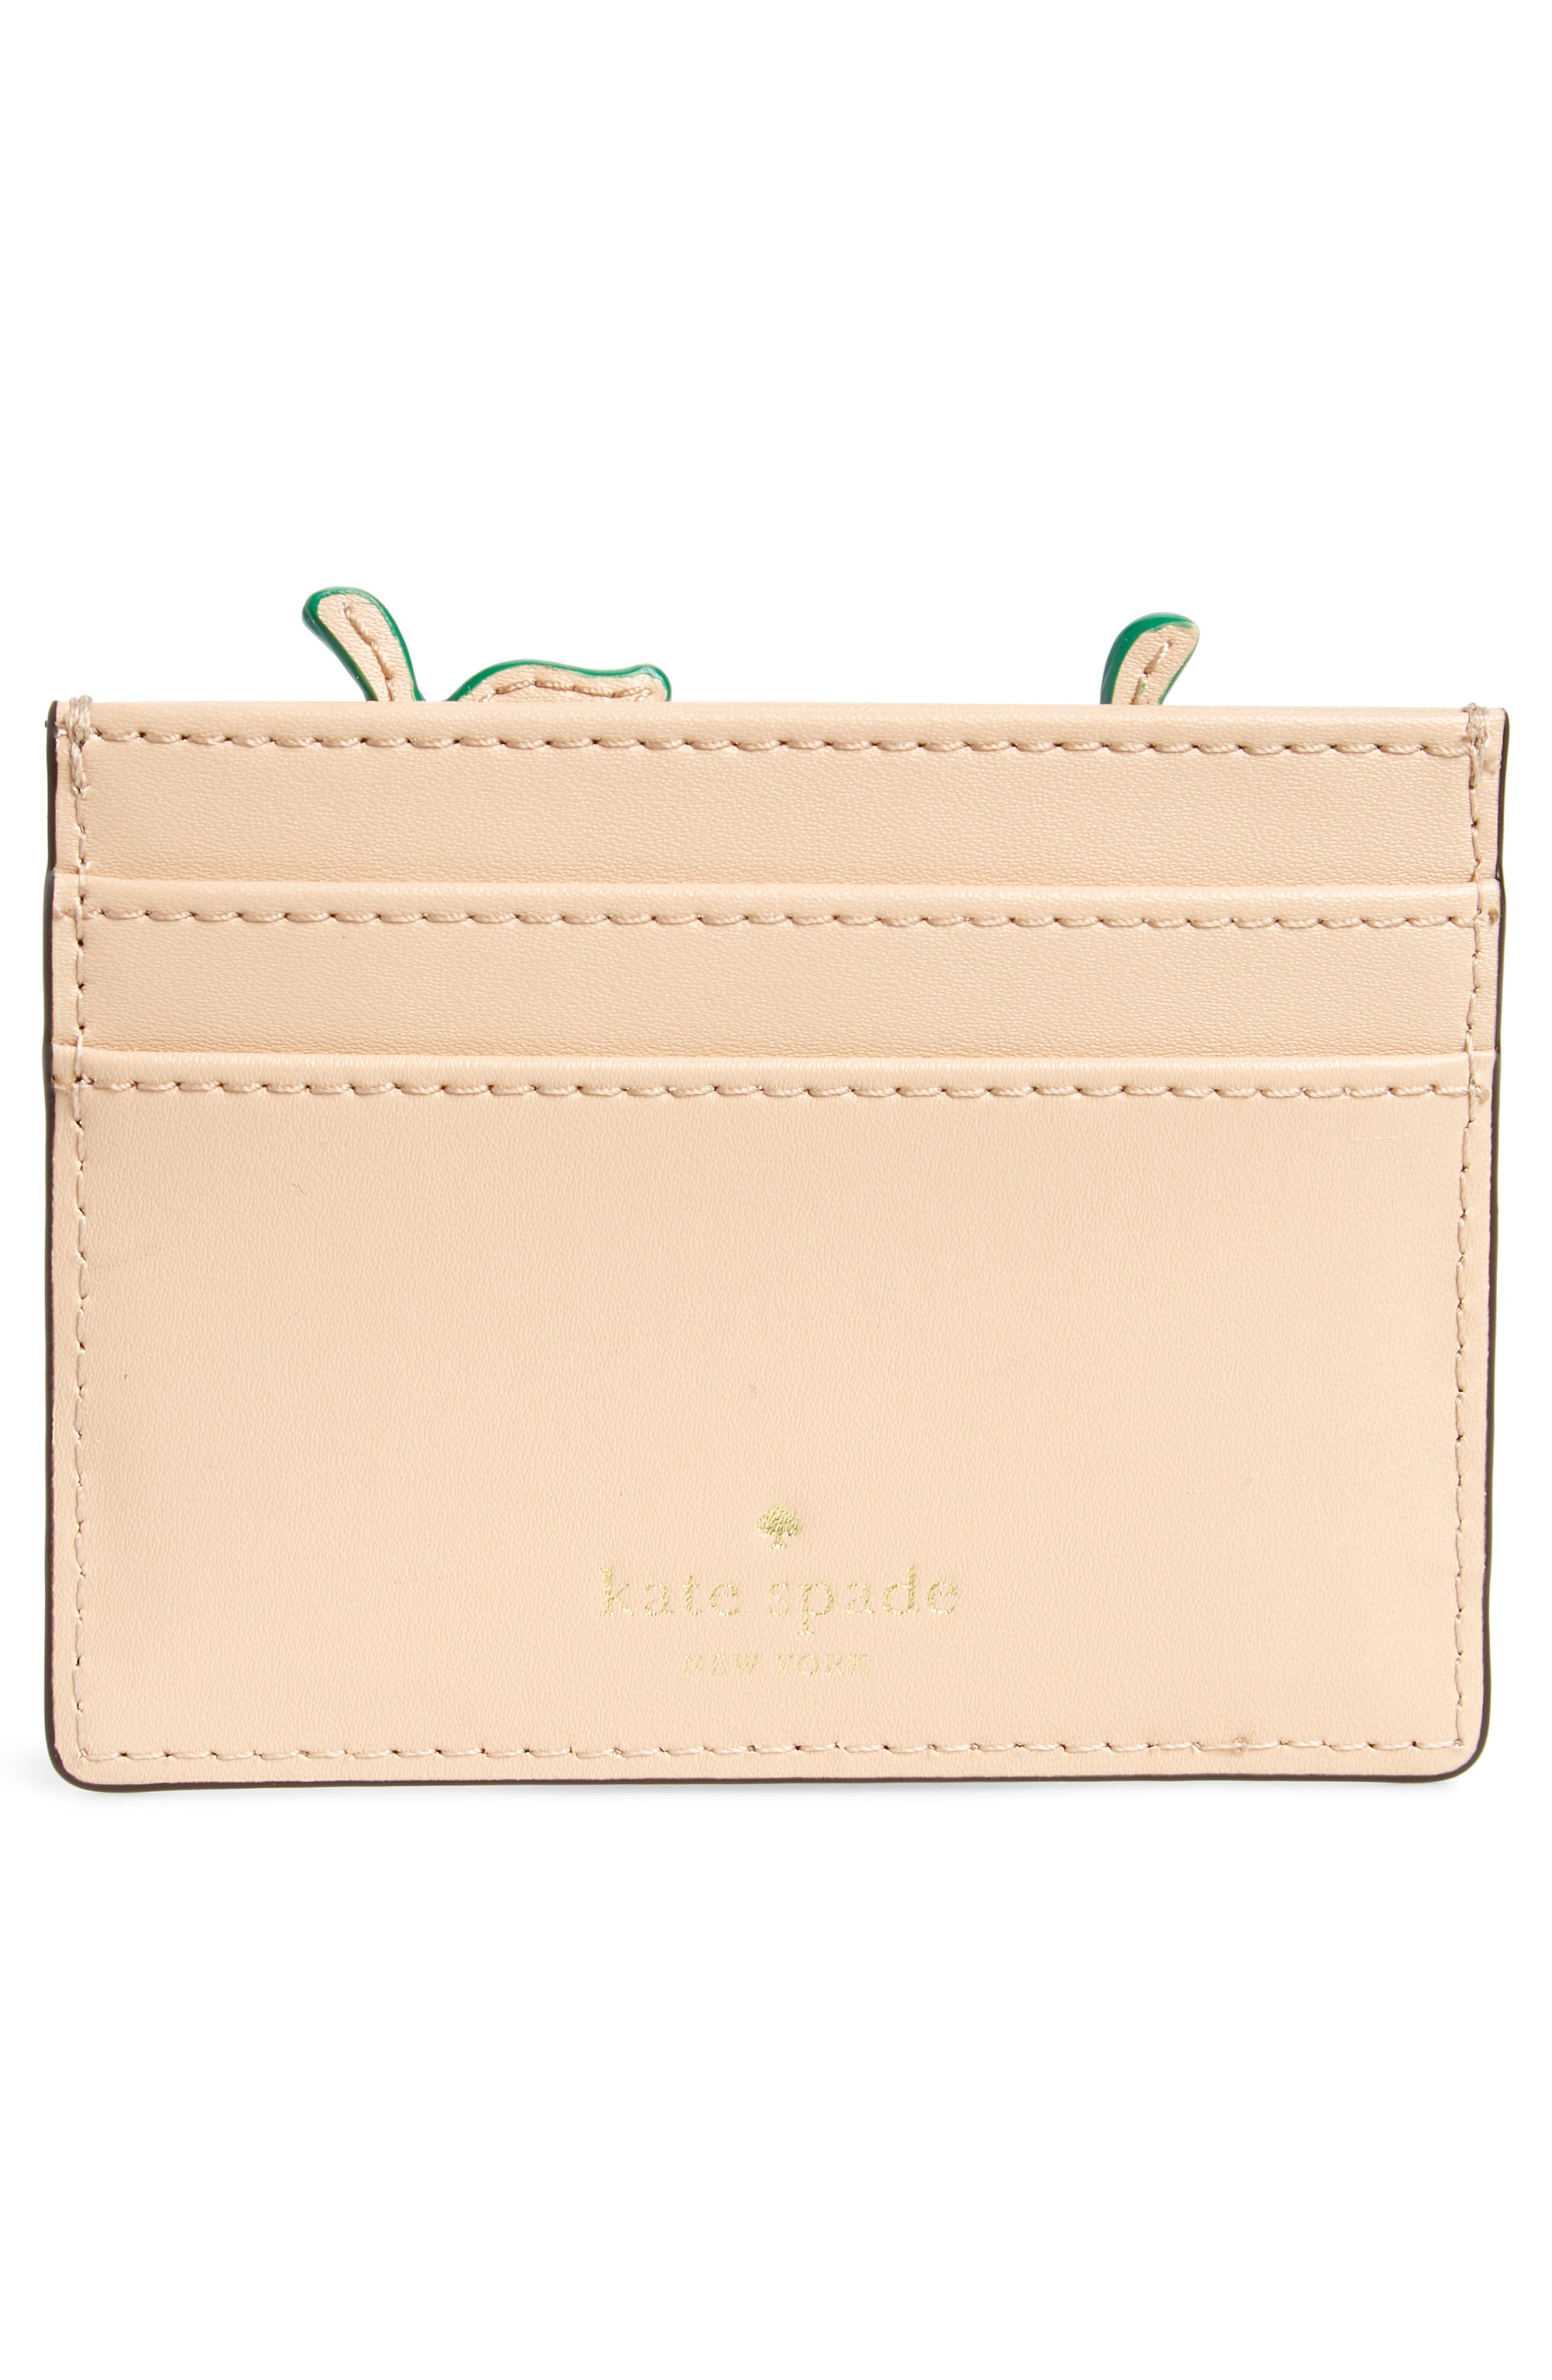 picnic strawberry basket leather card holder,                             Alternate thumbnail 2, color,